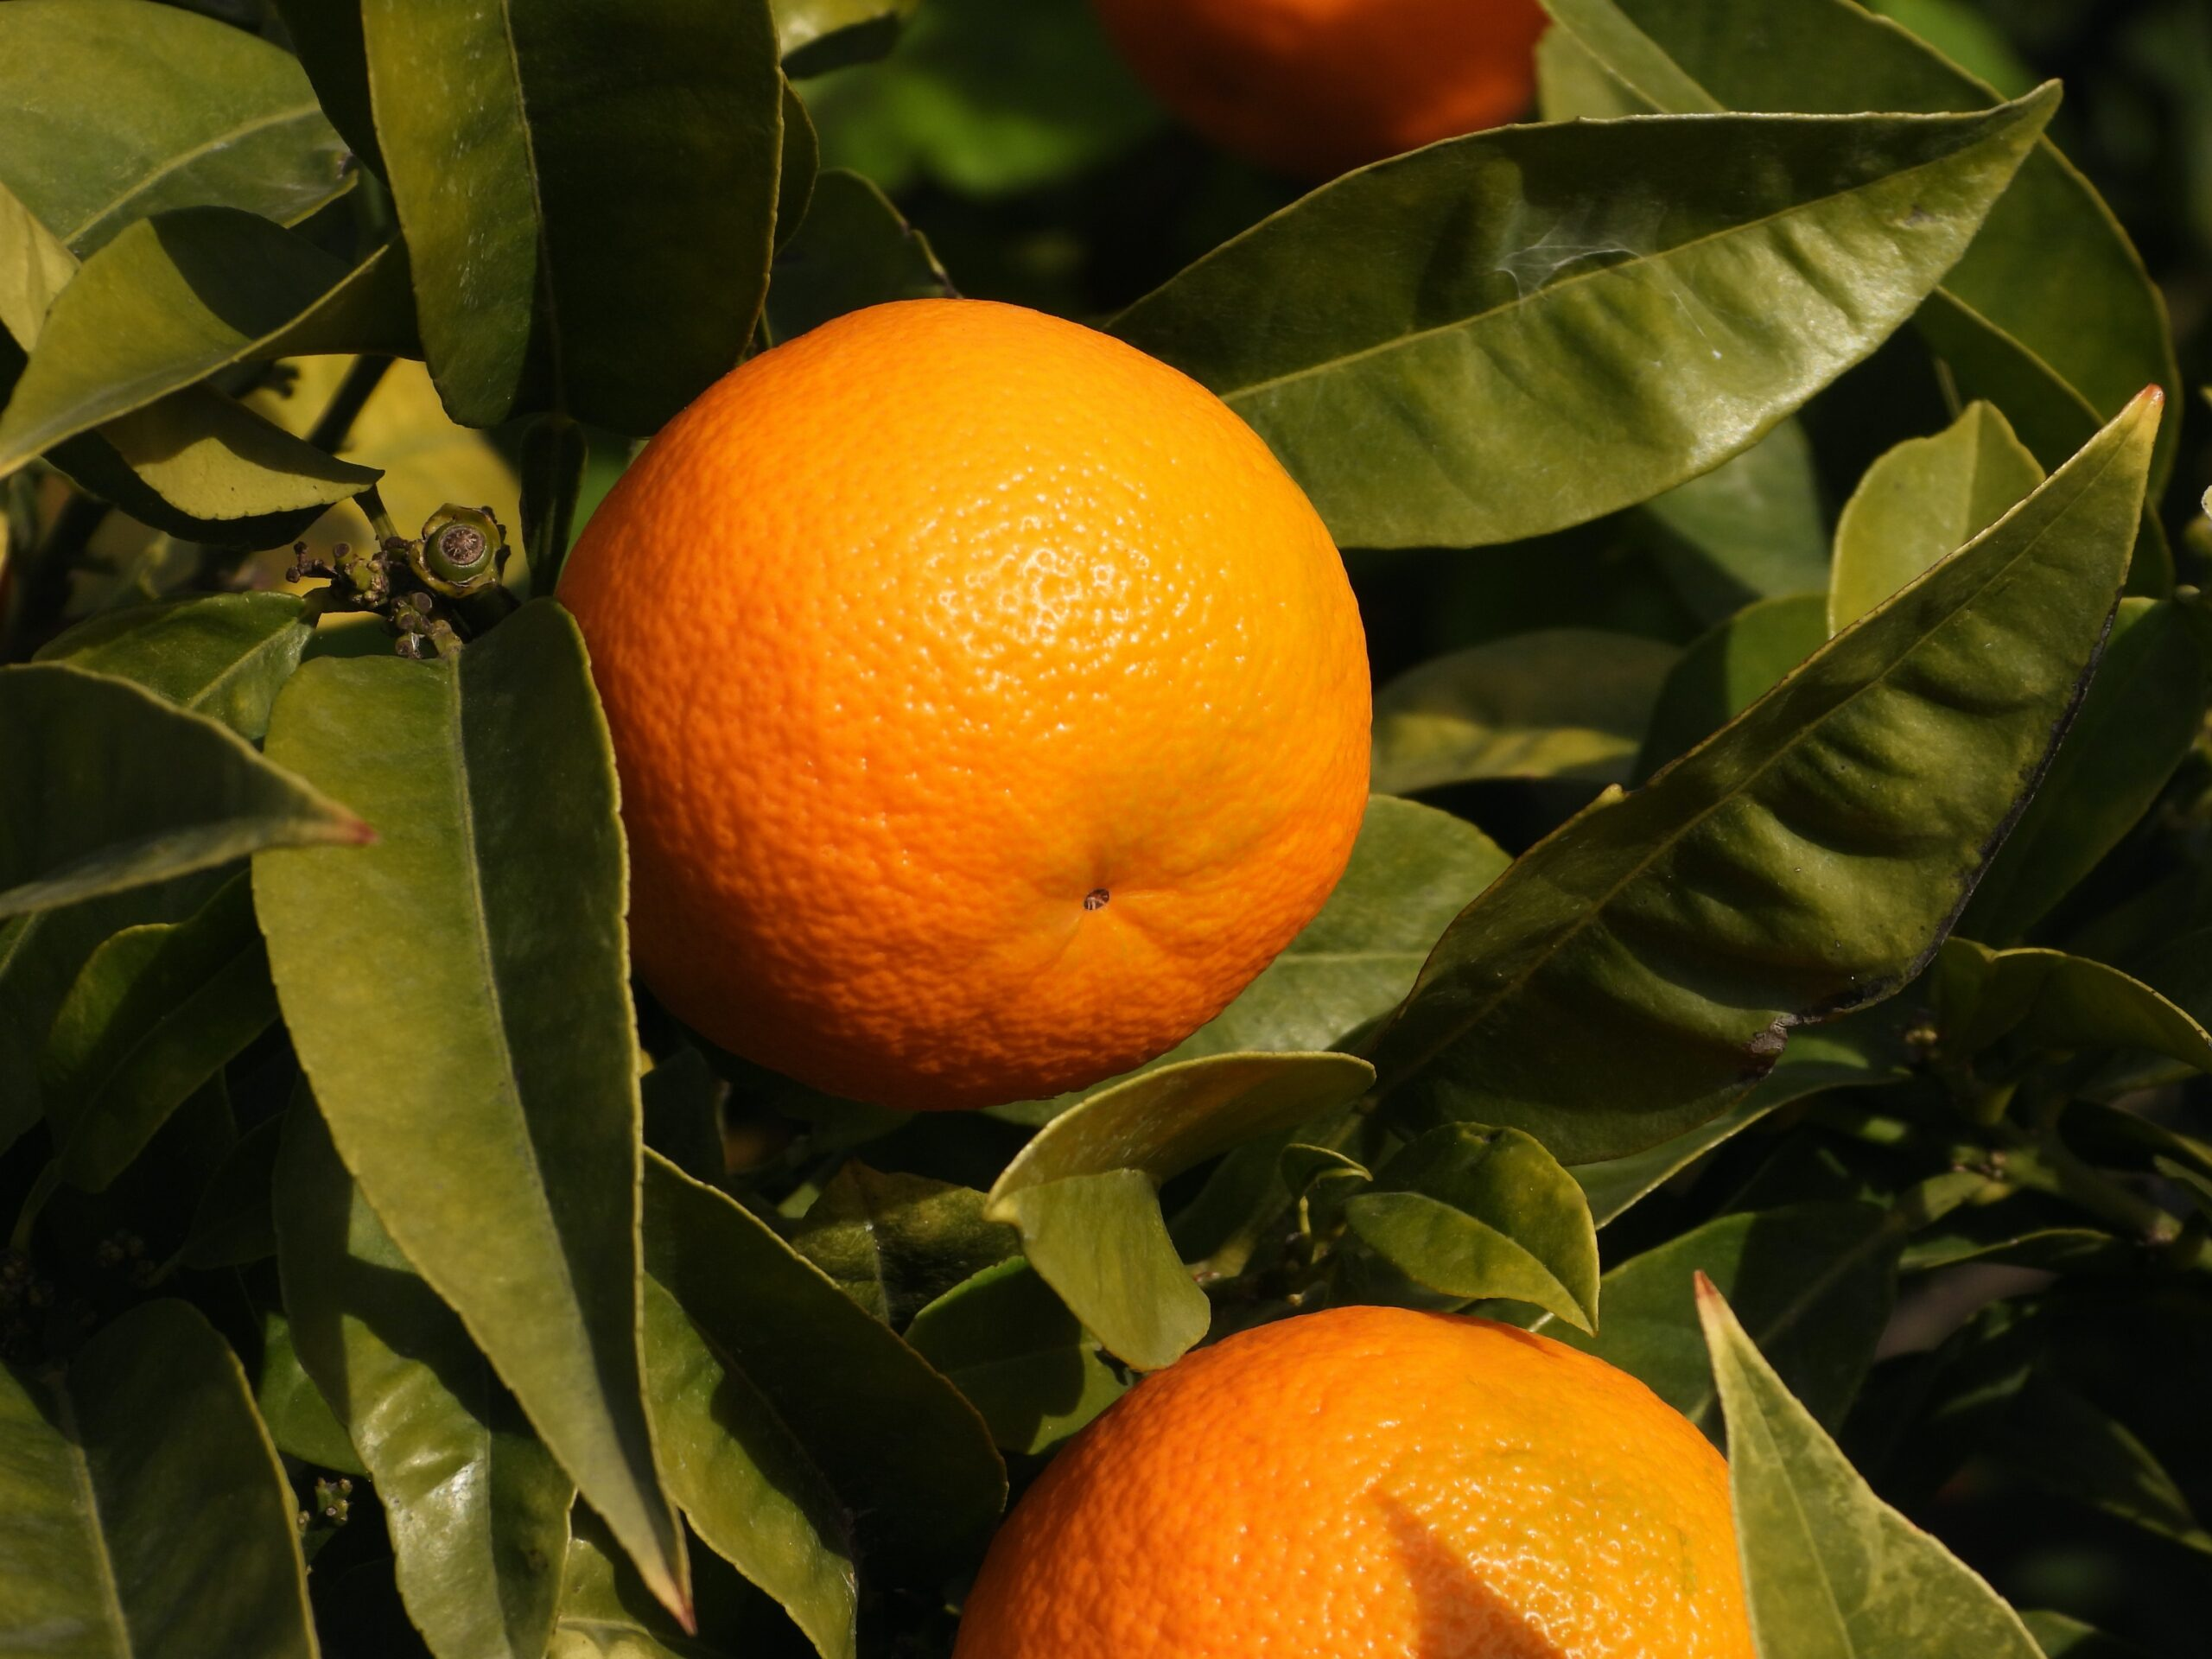 Oranges & the gift of roundness